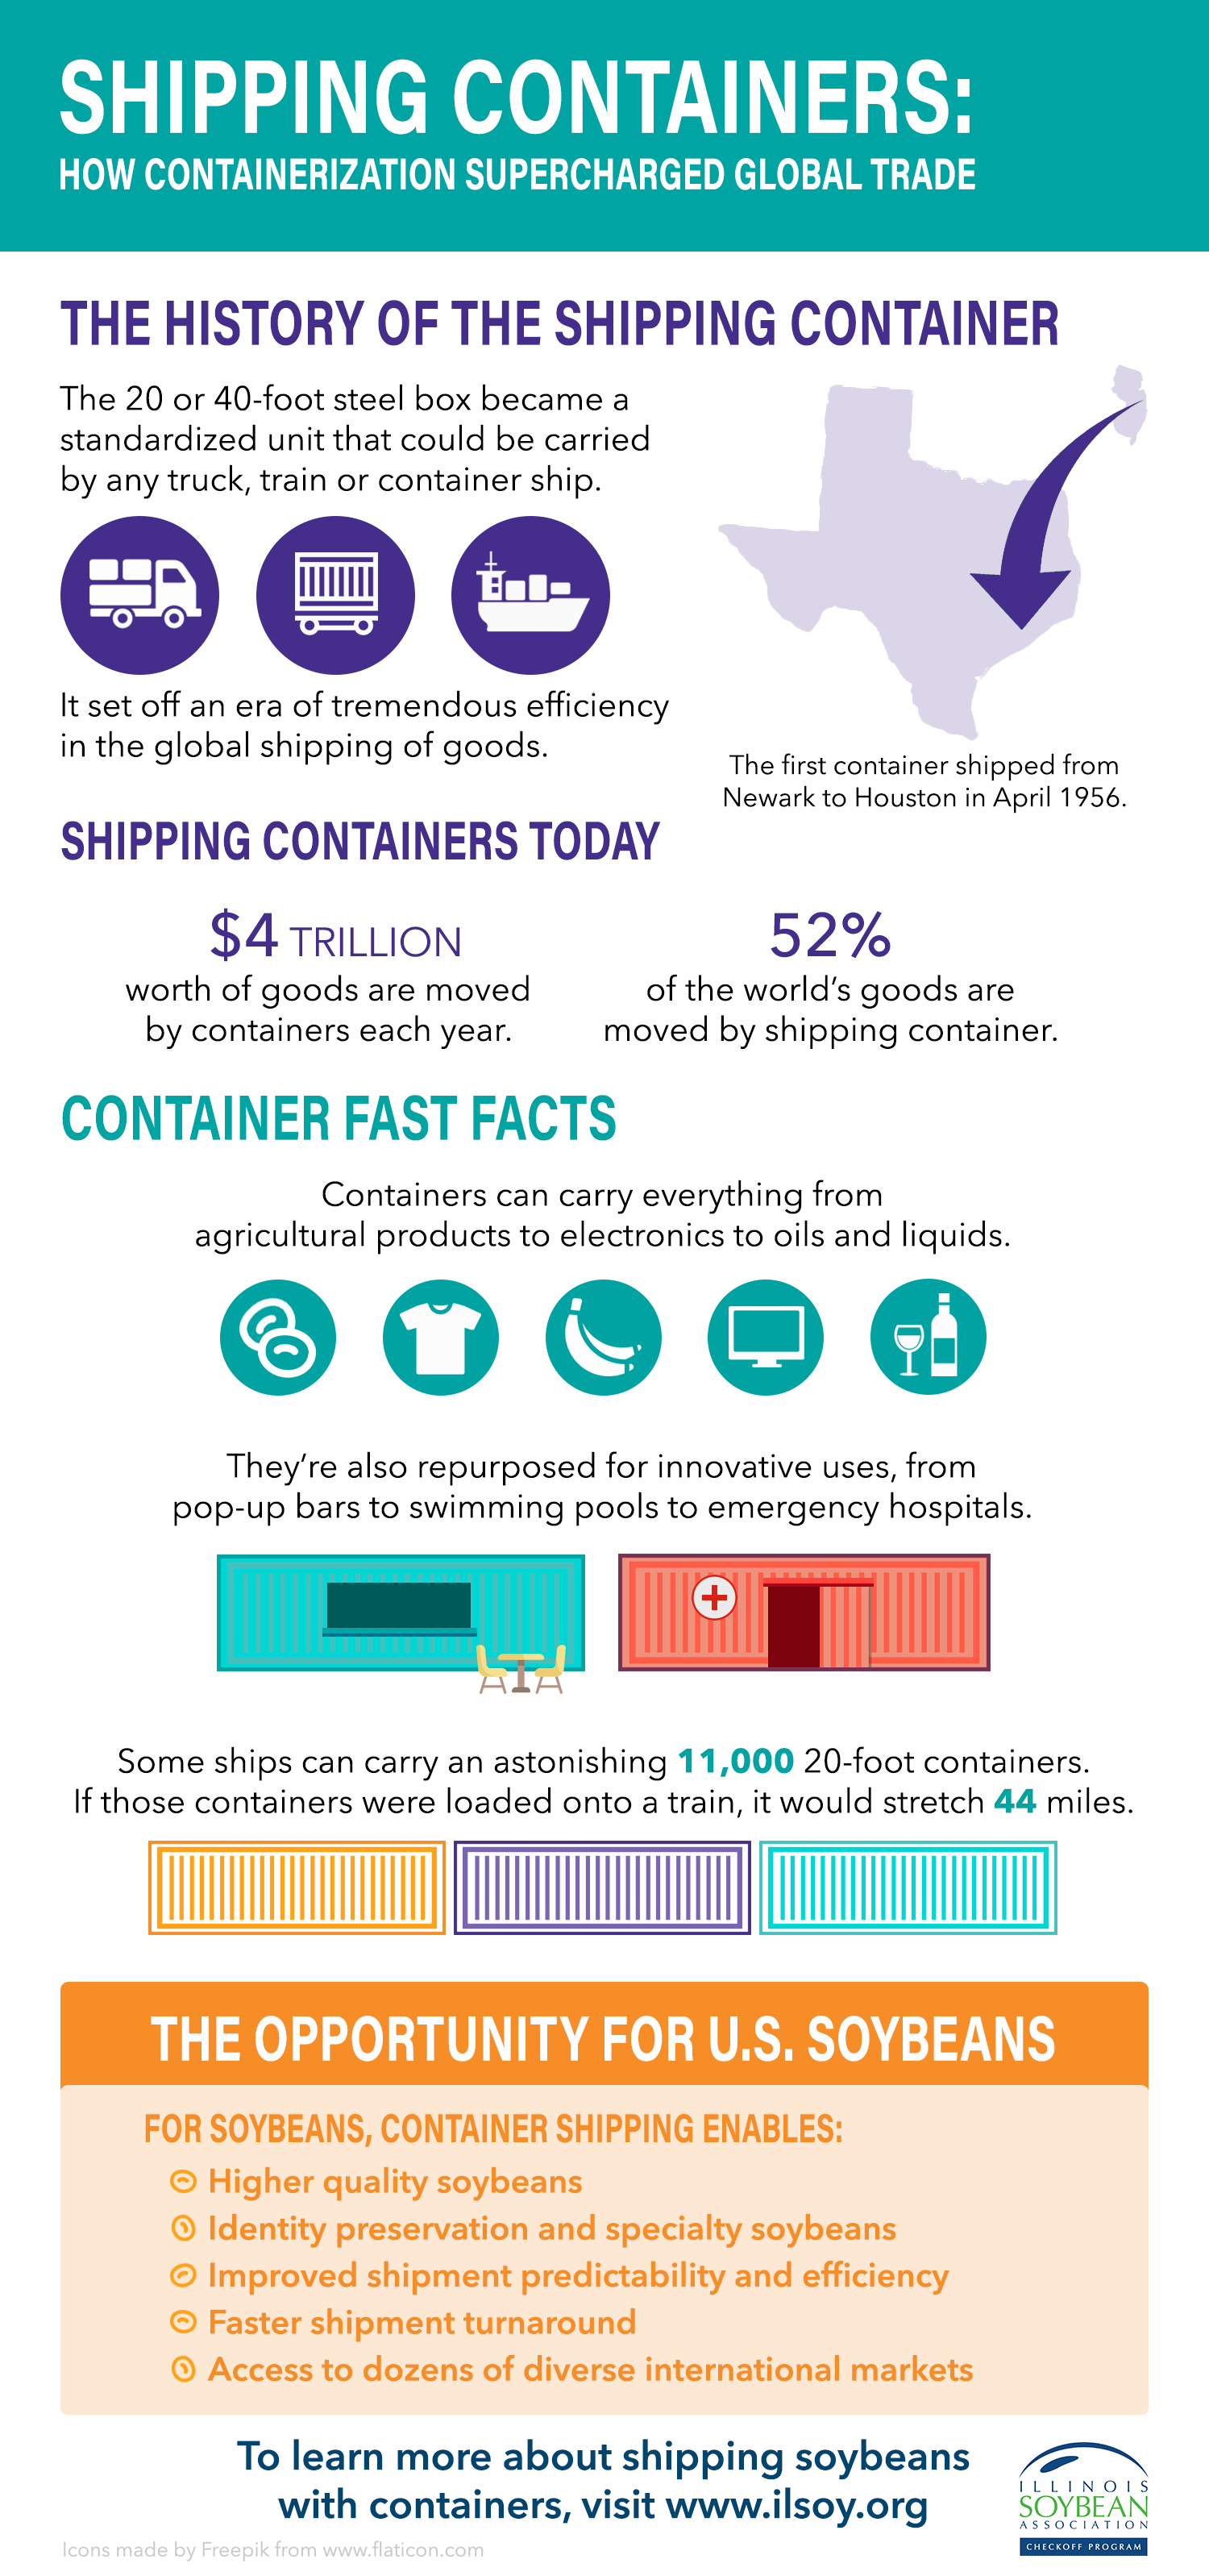 Shipping Containers: How Containerization Supercharged Global Trade